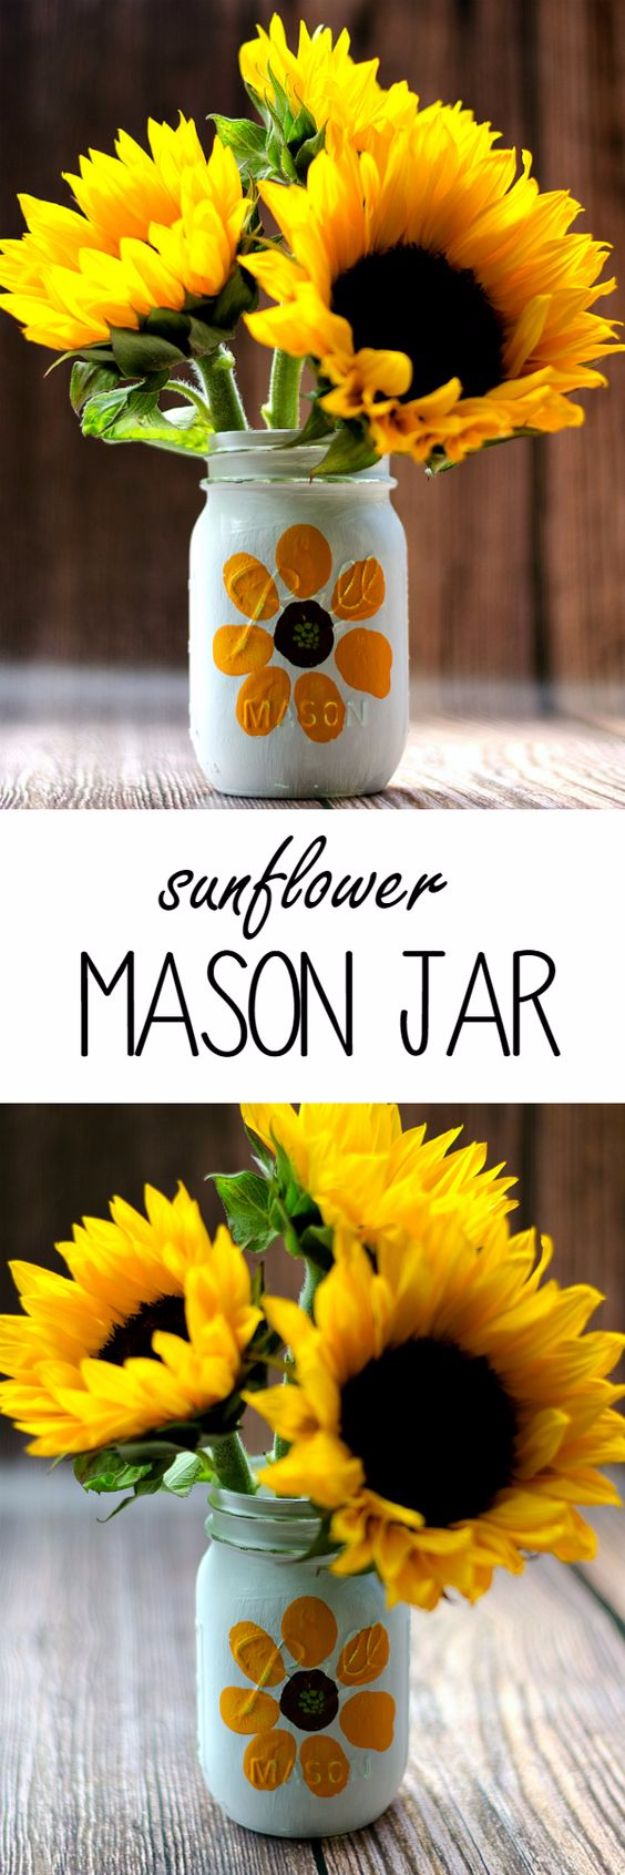 Best Mason Jar Crafts for Fall - Thumbprint Sunflower Mason Jar - DIY Mason Jar Ideas for Centerpieces, Wedding Decorations, Homemade Gifts, Craft Projects with Leaves, Flowers and Burlap, Painted Art, Candles and Luminaries for Cool Home Decor http://diyjoy.com/mason-jar-crafts-fall